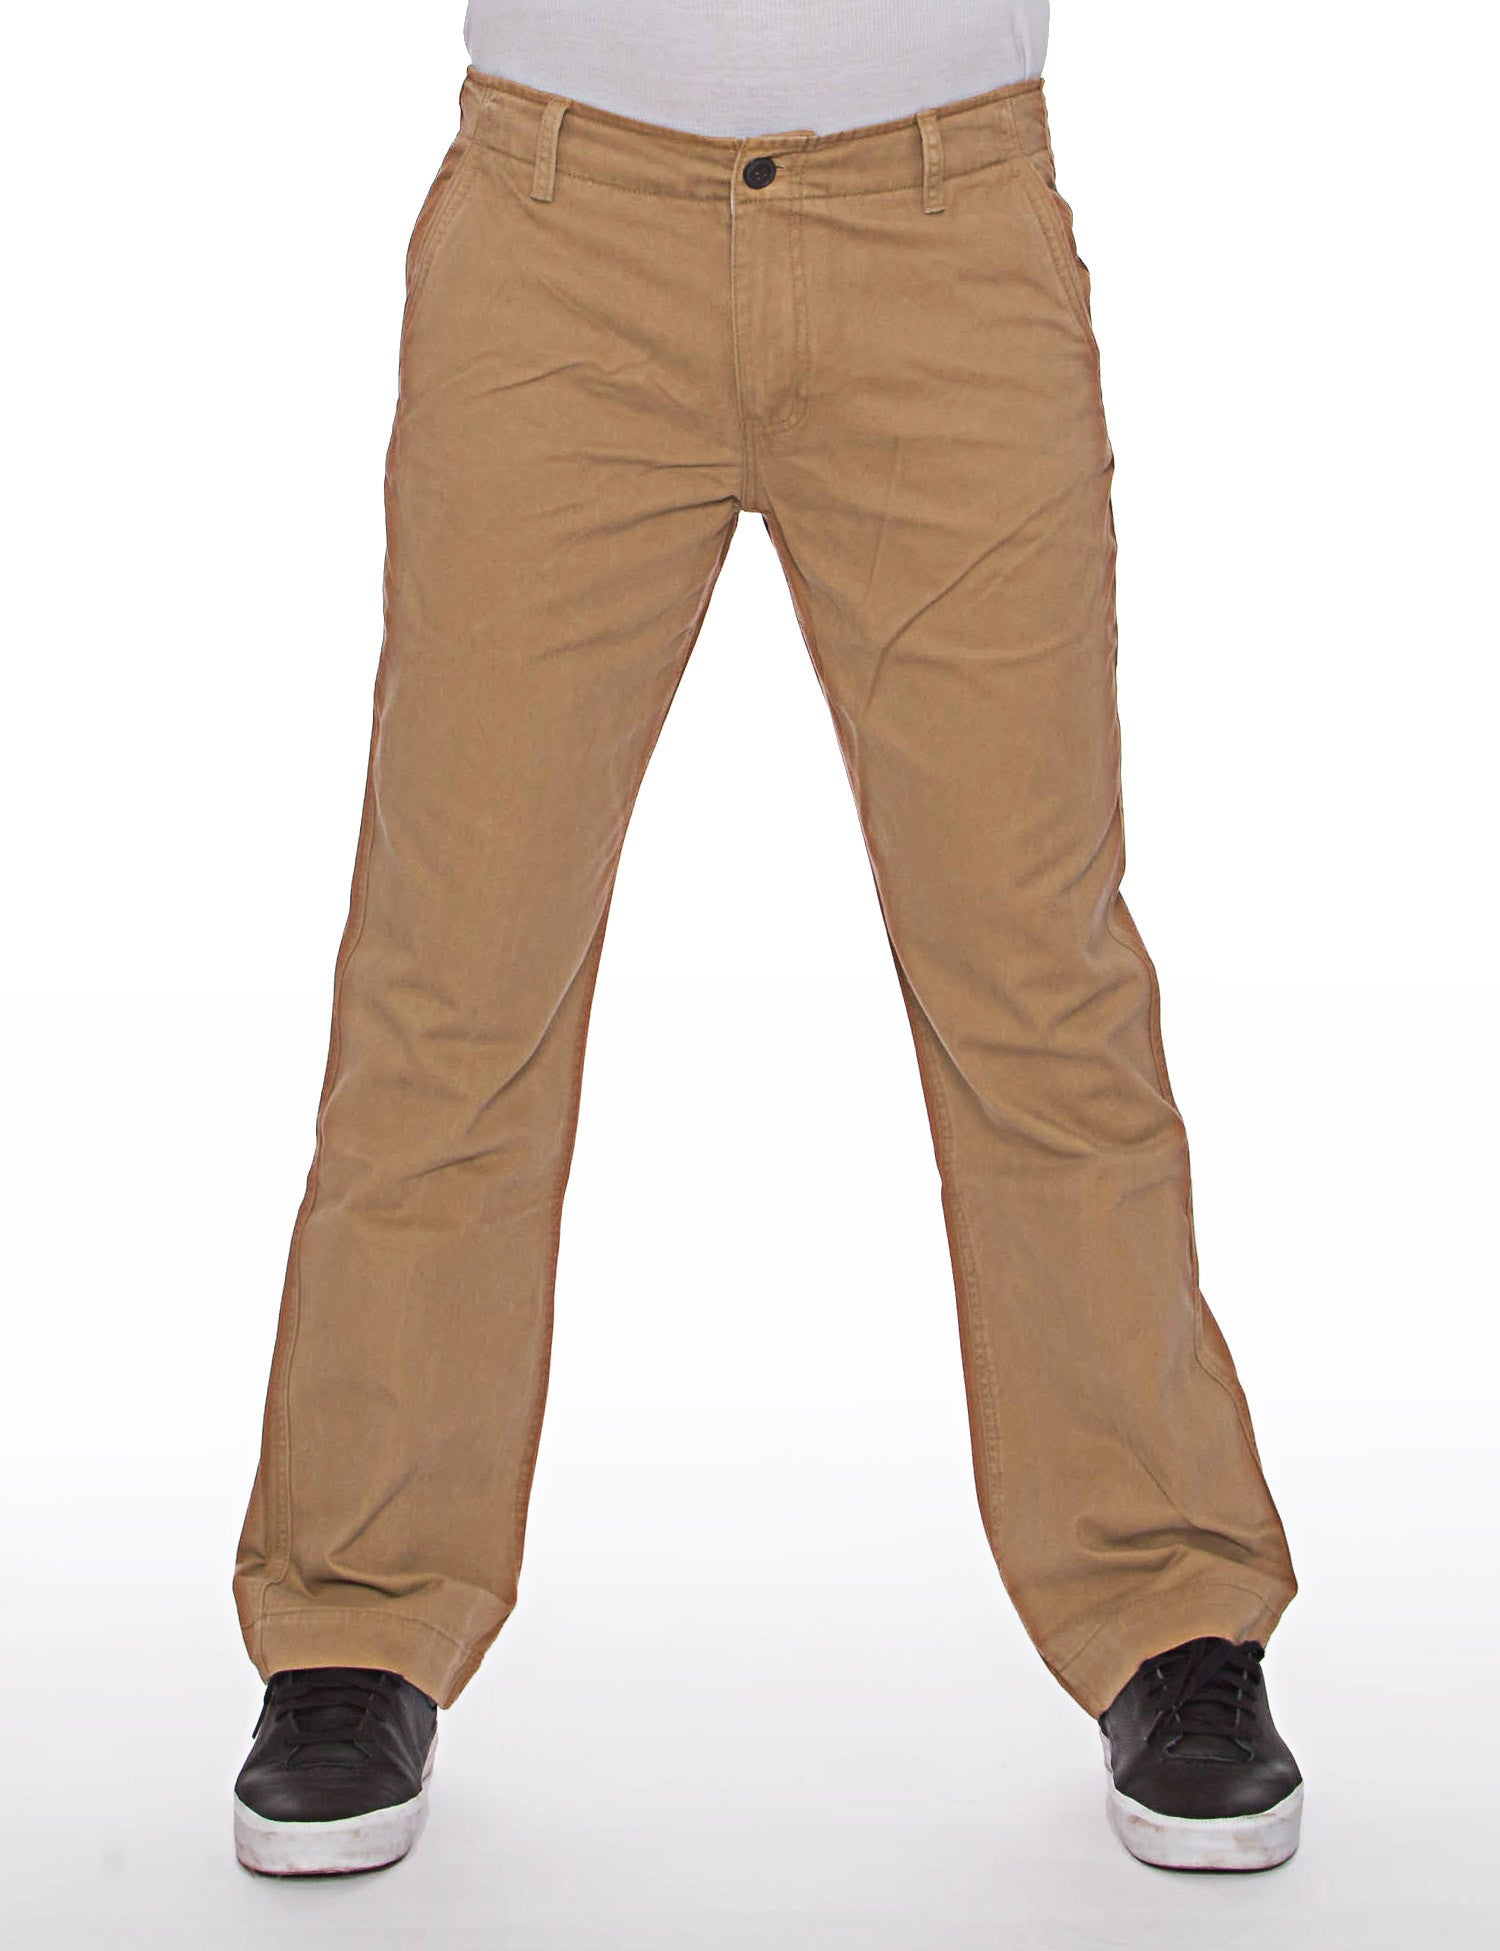 Royal Blue Basic Slim Straight Fit Chino Pant Brown